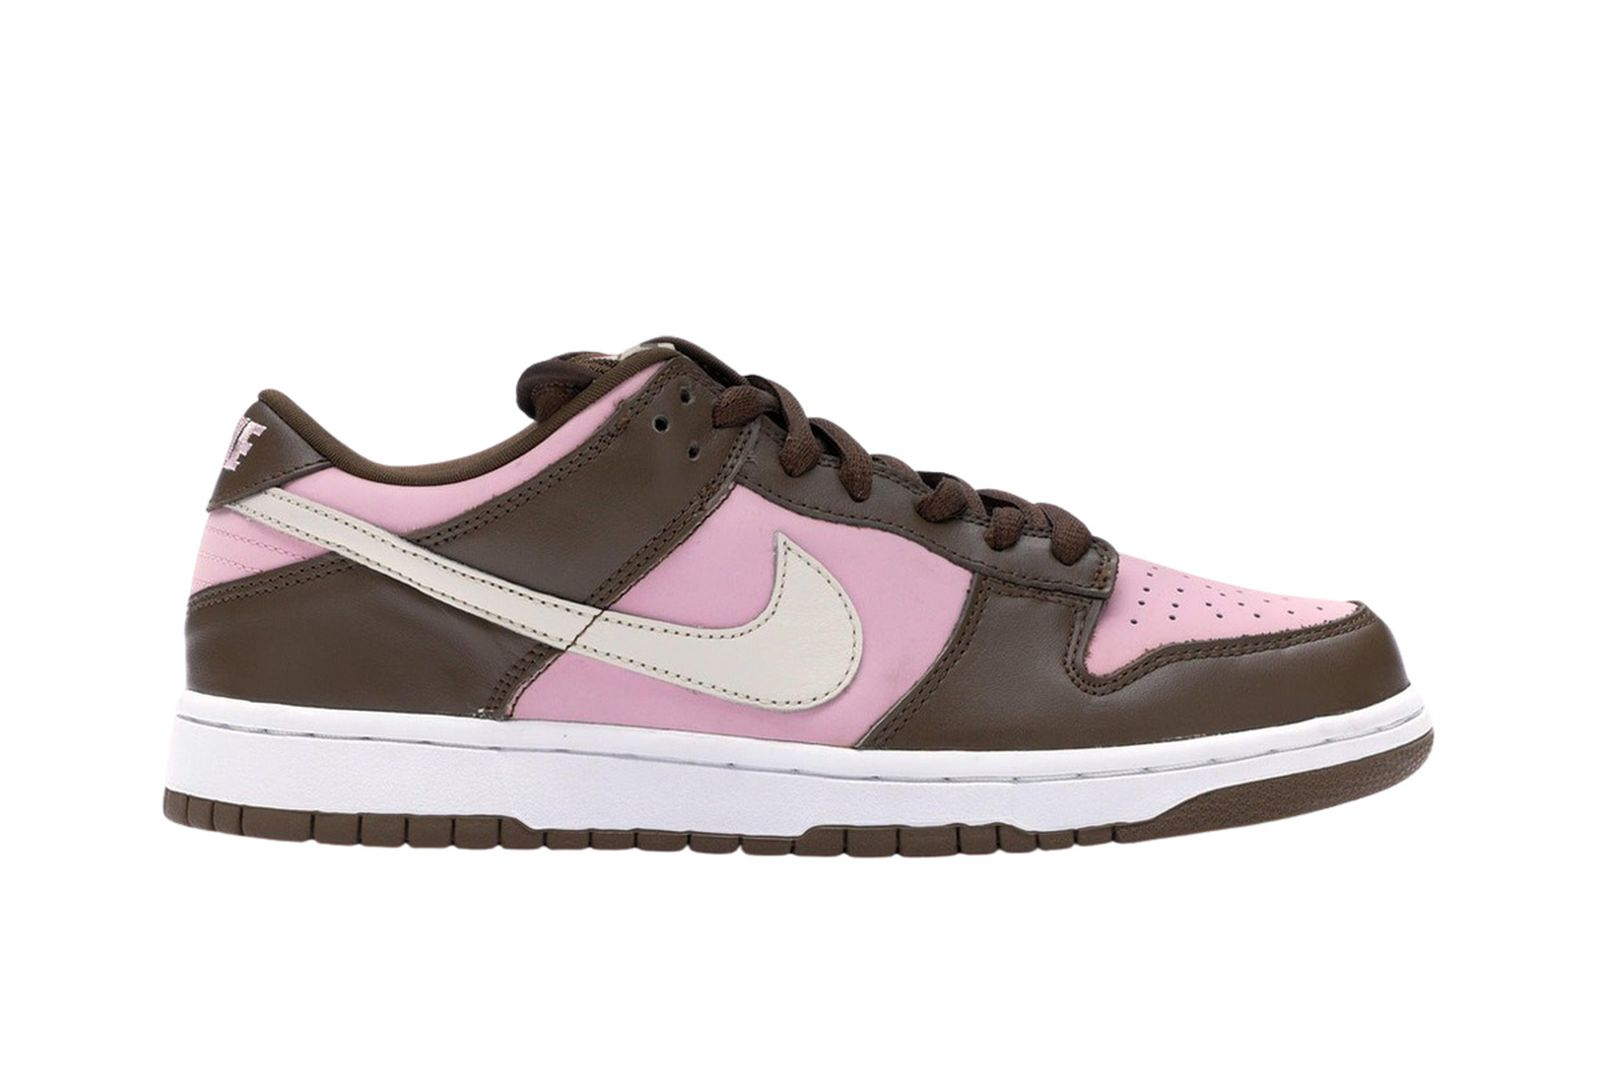 stussy-nike-sneaker-collaboration-roundup-05